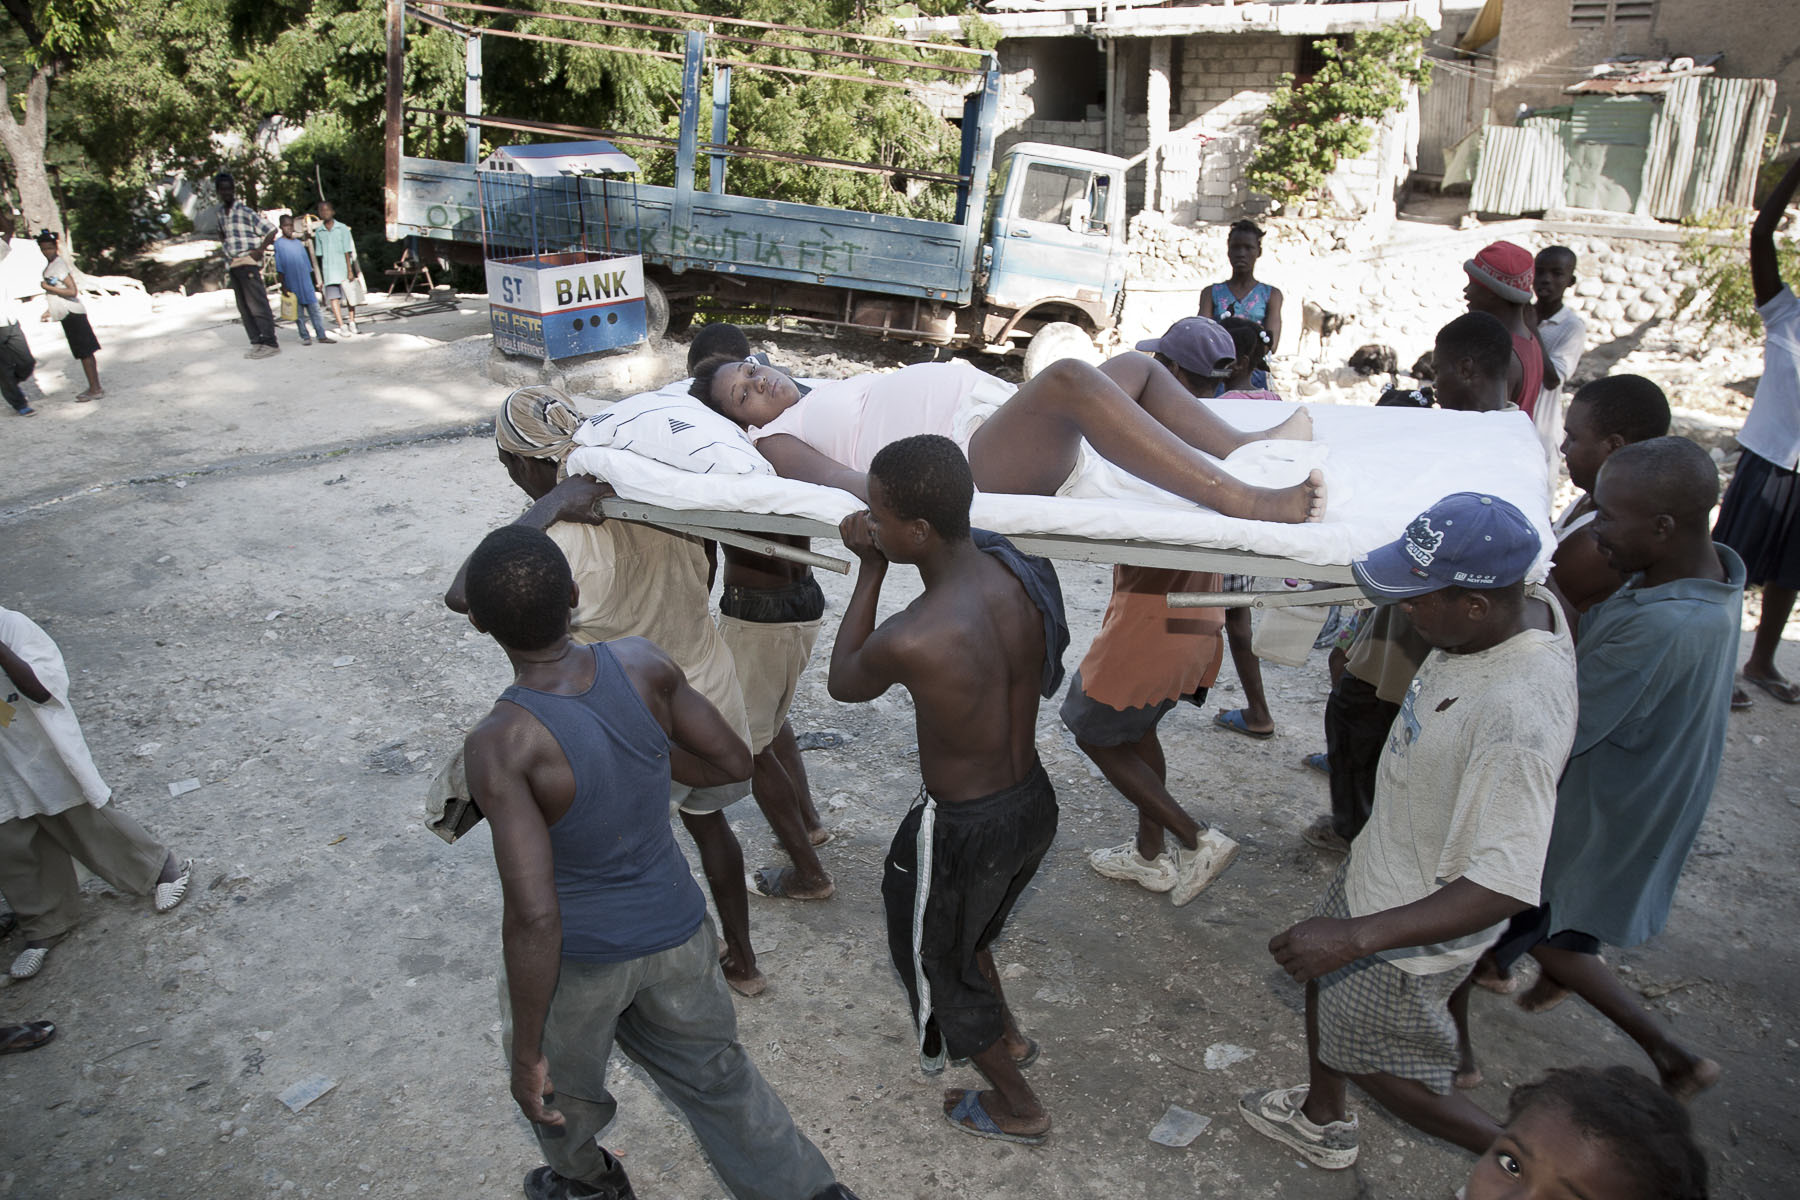 A woman about to give birth is carried by her neighbours in the Carrefour-Feuille area in November 2003